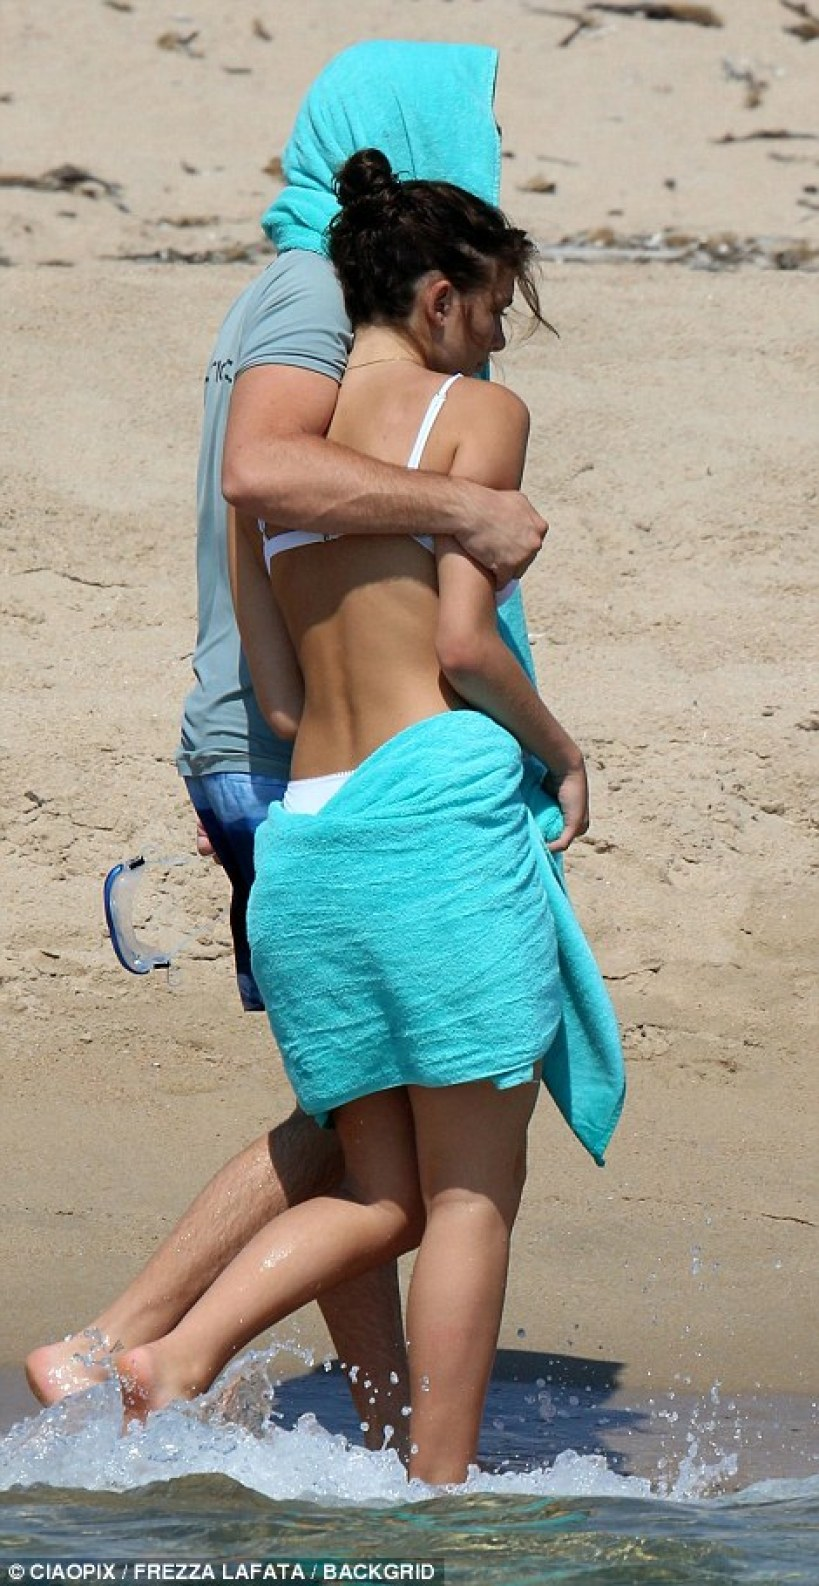 Packing on the PDA: Leonardo wrapped a loving arm around his new girlfriend's shoulders as they strolled along the shoreline